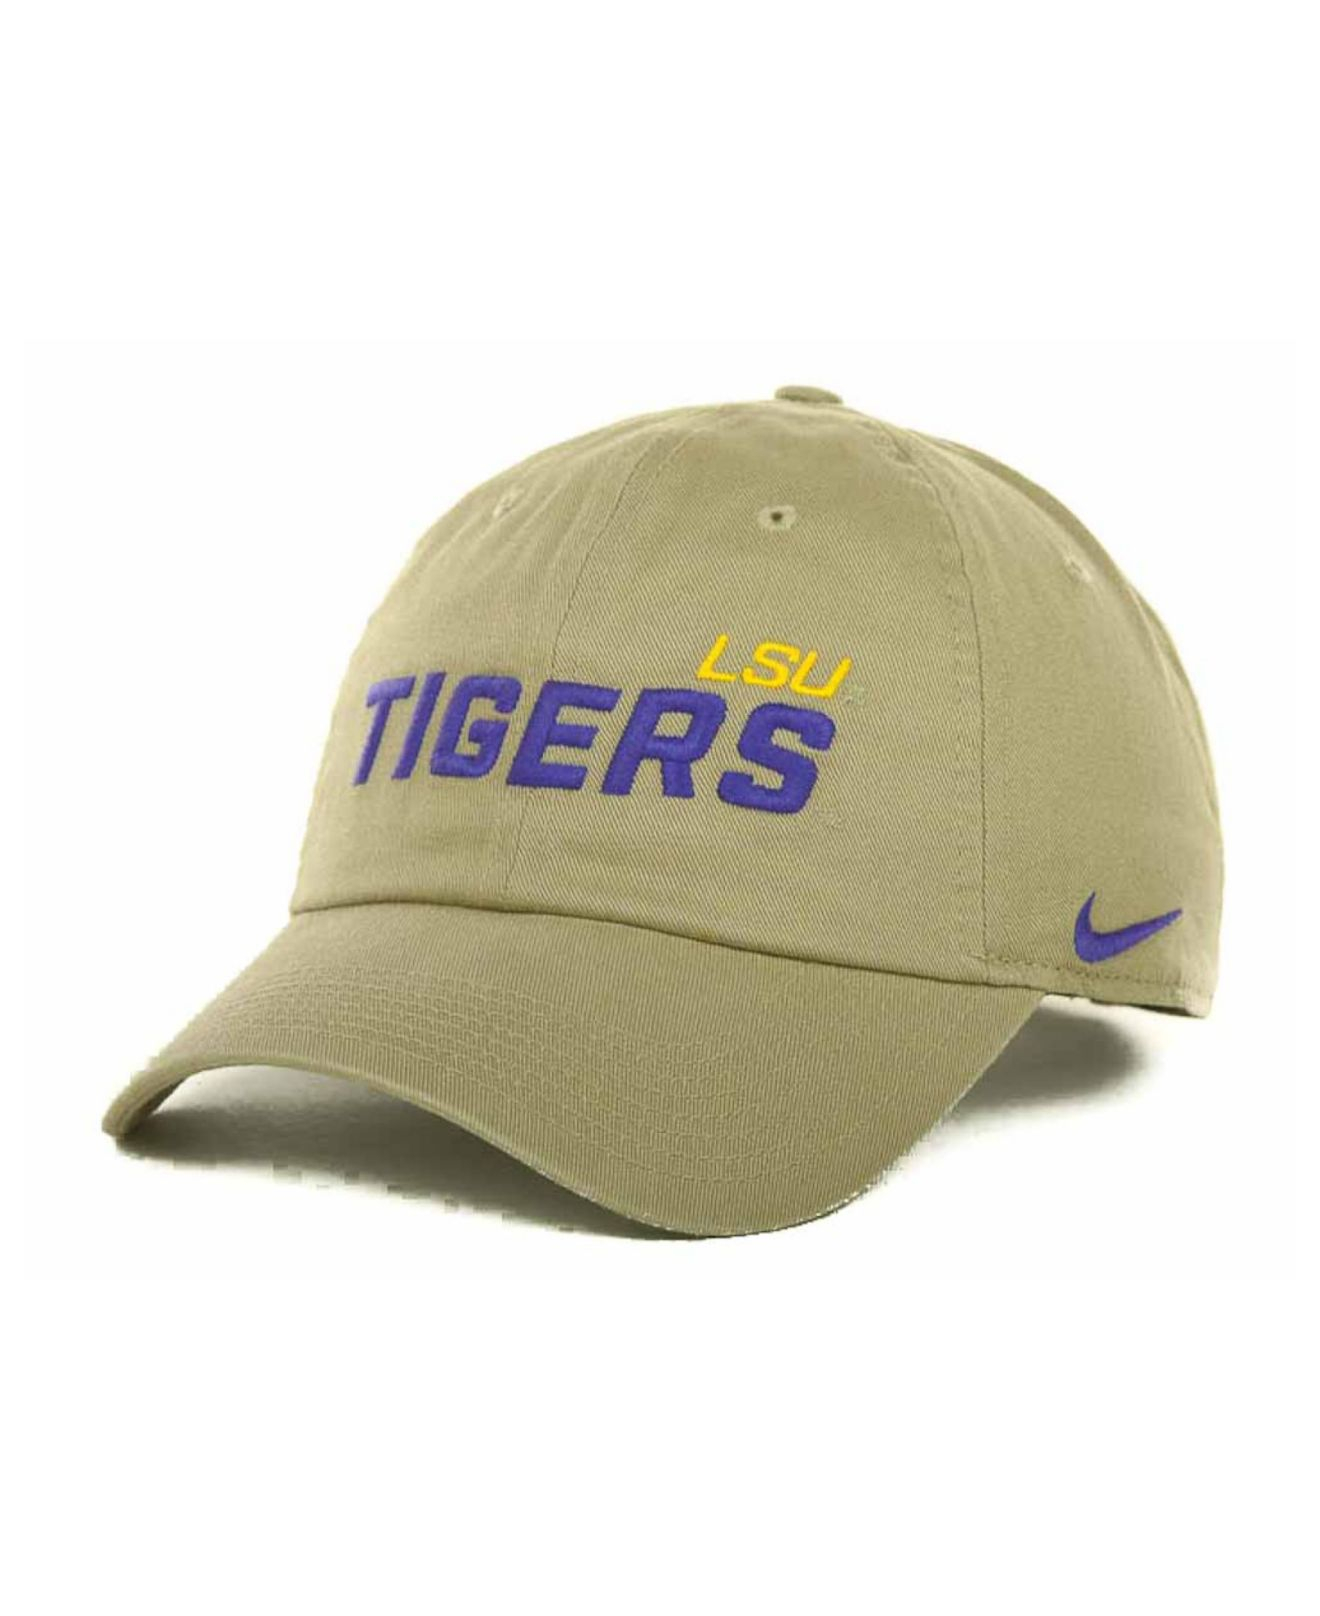 3f15c68eb770c ... usa lyst nike lsu tigers heritage 86 campus cap in natural for men  3614e 8218c